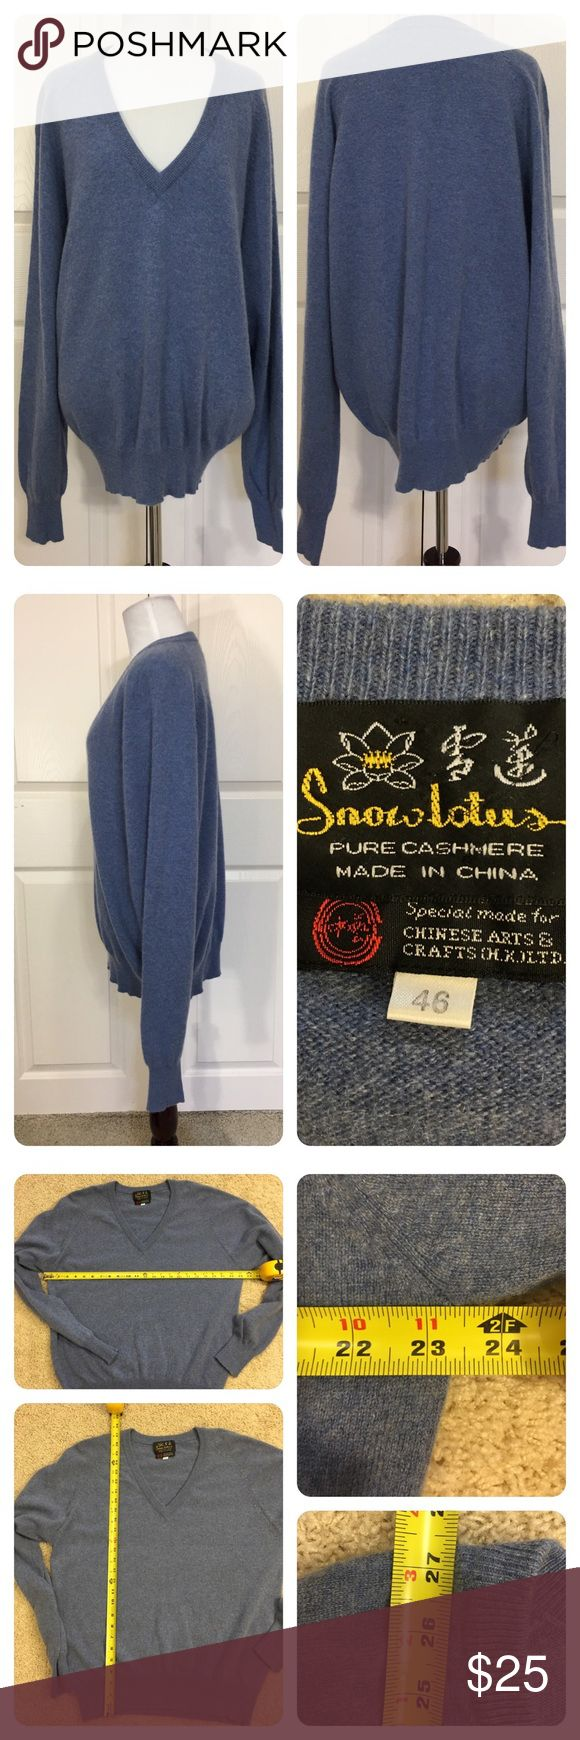 Snow Lotus pure cashmere sweater Classic v- neck blue men's Cashmere sweater. Great as a unisex option. Slight mark on sleeve and light wear. Super comfy! Sized as 46 will mark Large. Check measurements. Snow Lotus Sweaters V-Neck